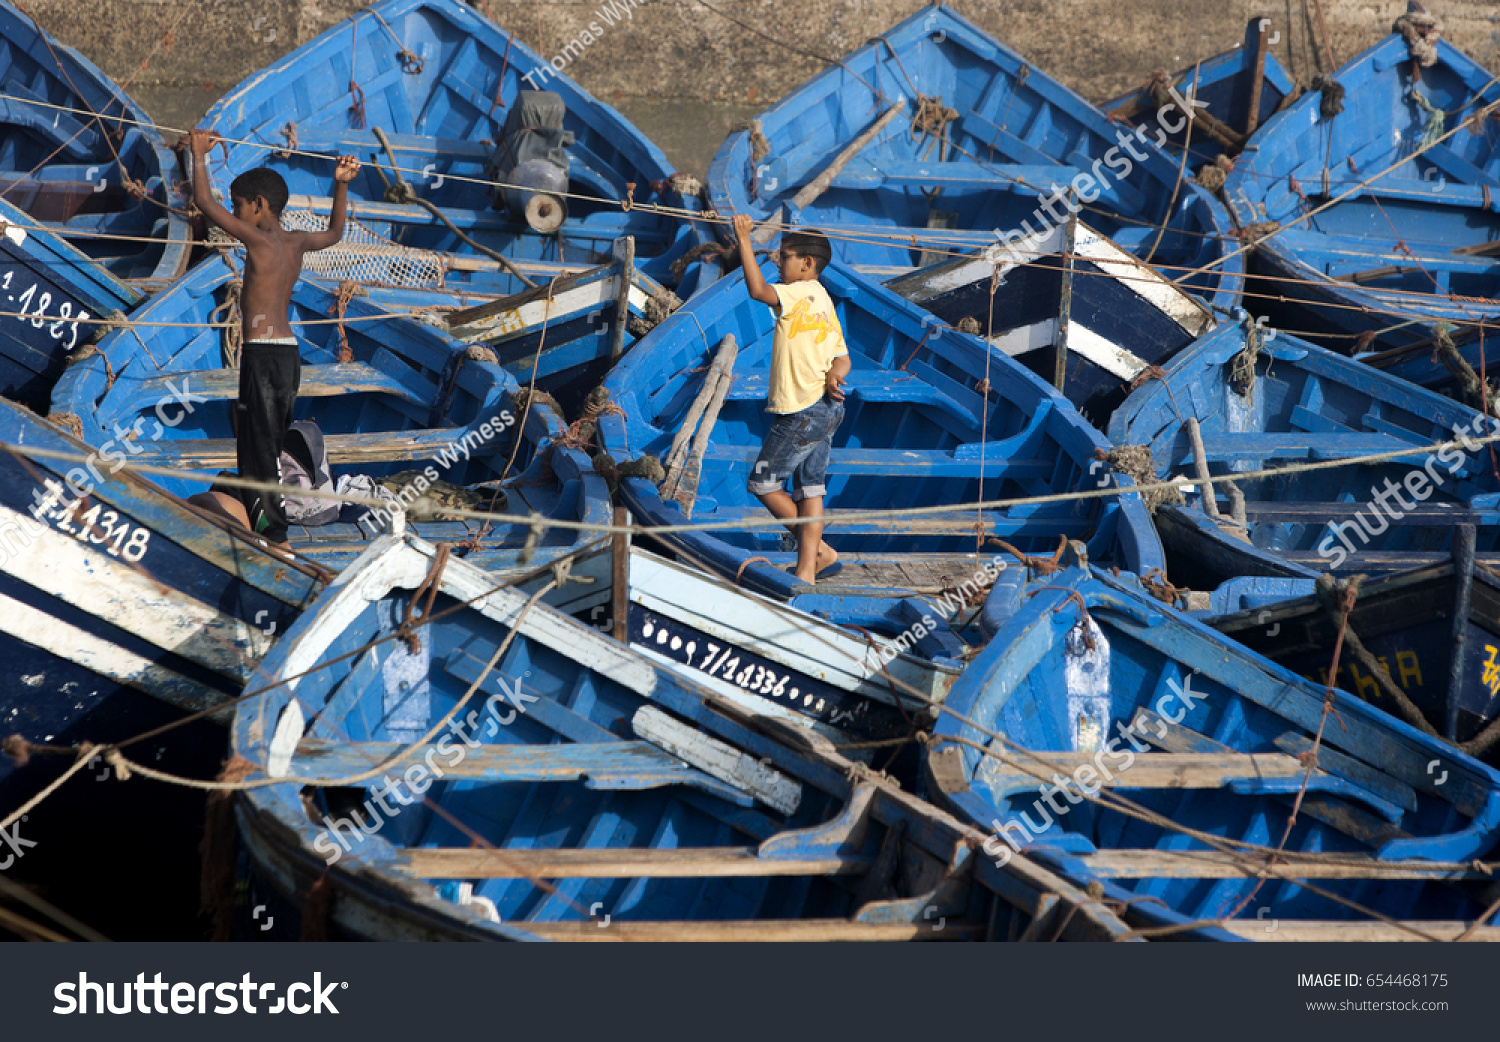 hight resolution of essaouira morocco august 02 2013 boys stand amongst docked fishing boats in